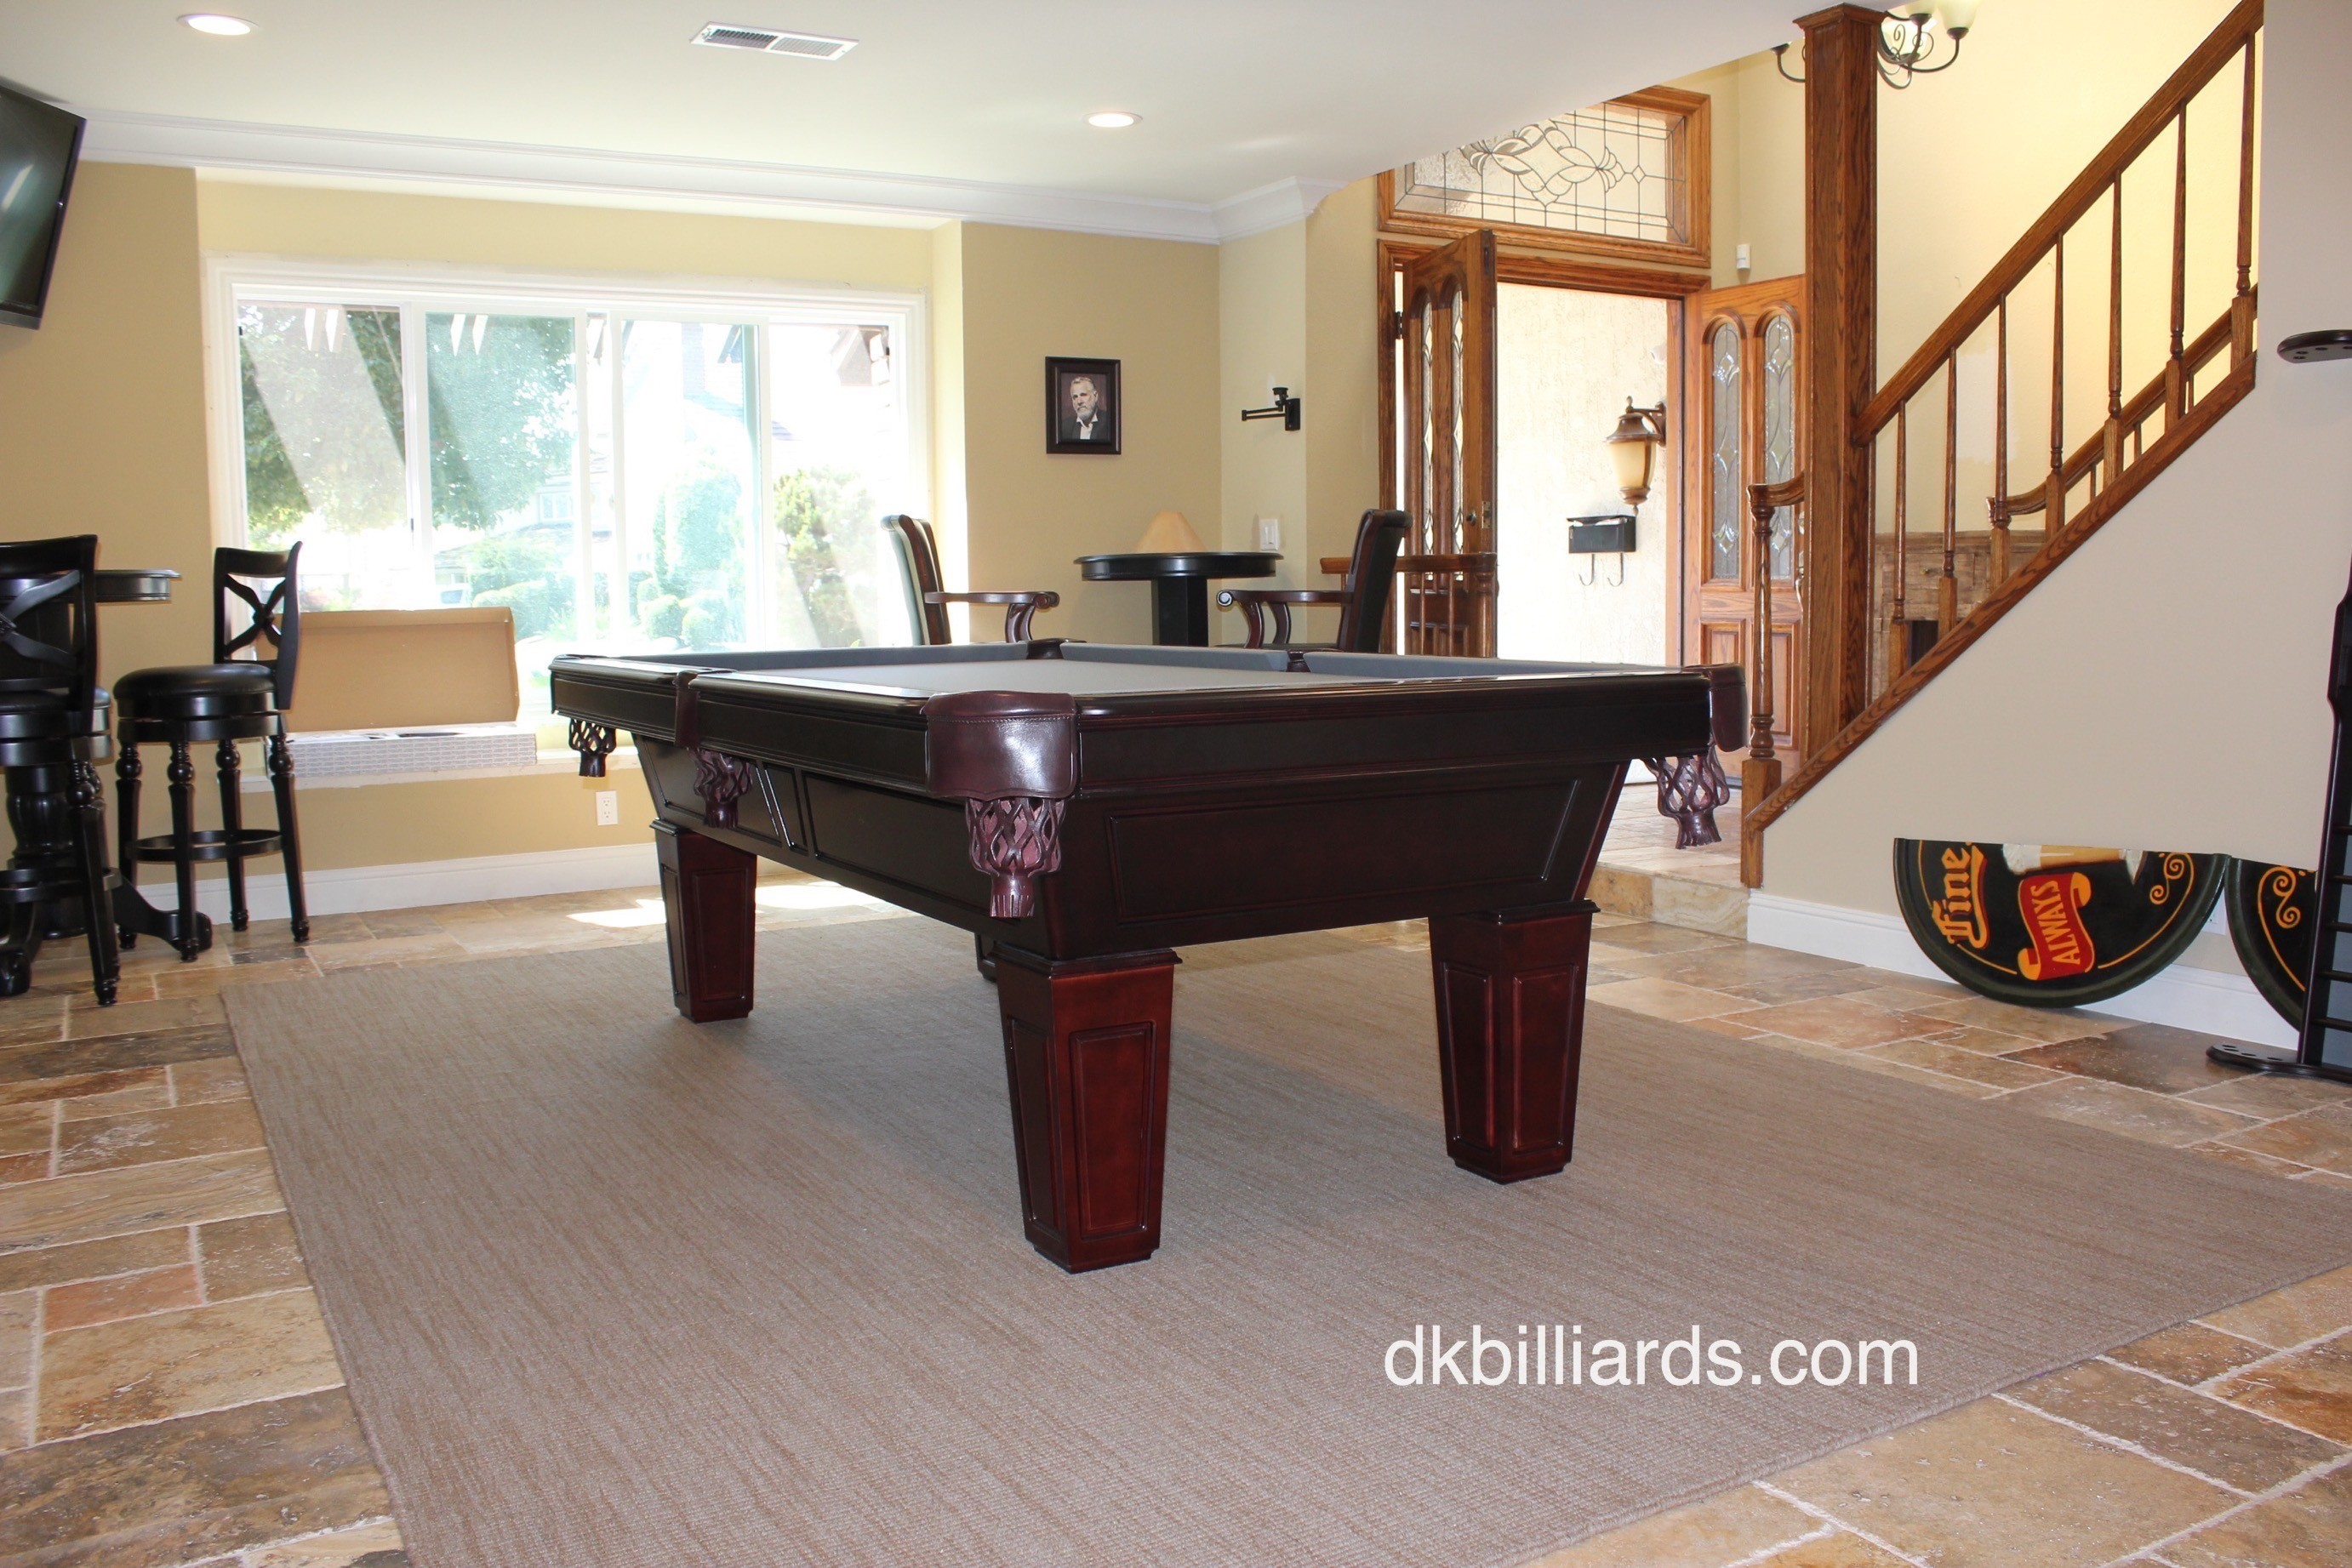 Superbe Product Categories. Uncategorized · Pool Tables · Accessories ...